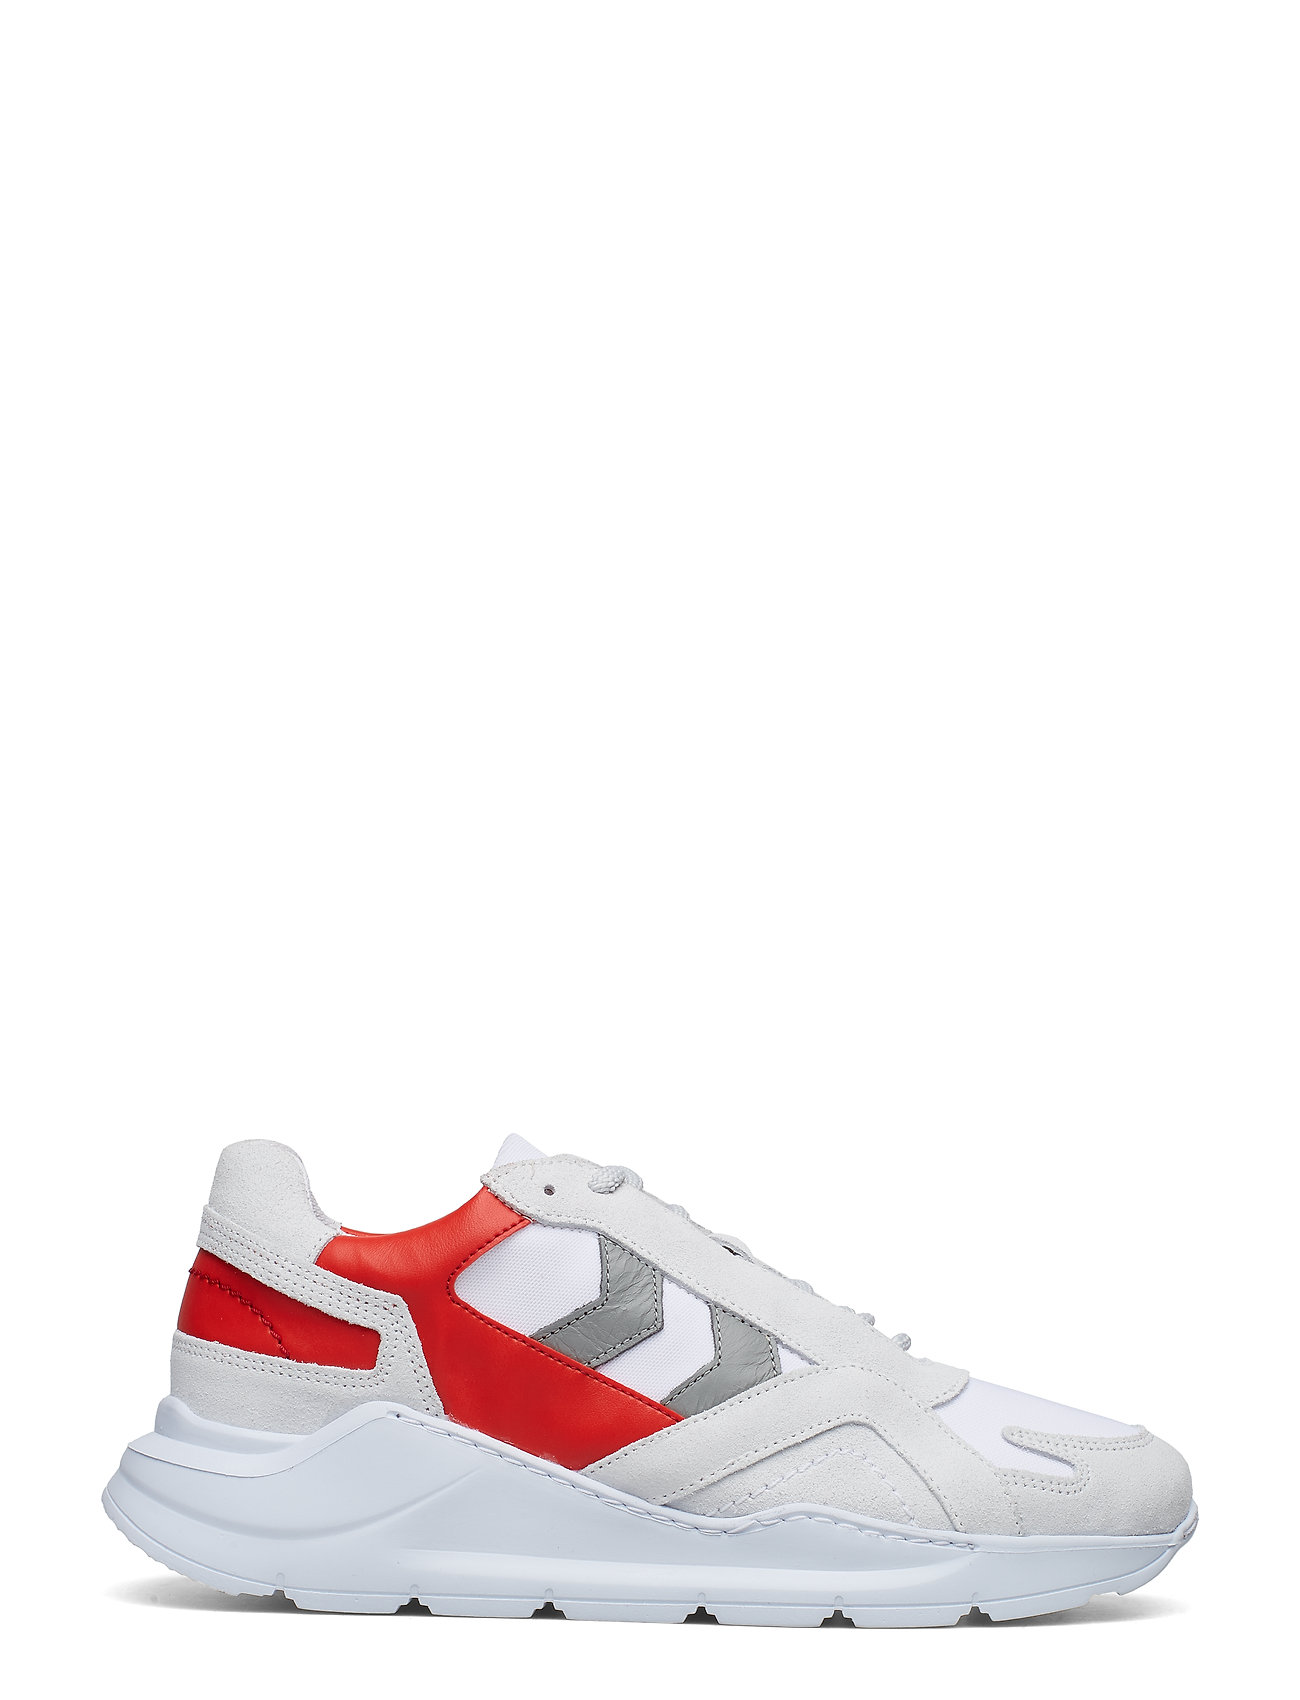 Hummel Hive - EIRE CHASE - chunky sneakers - white